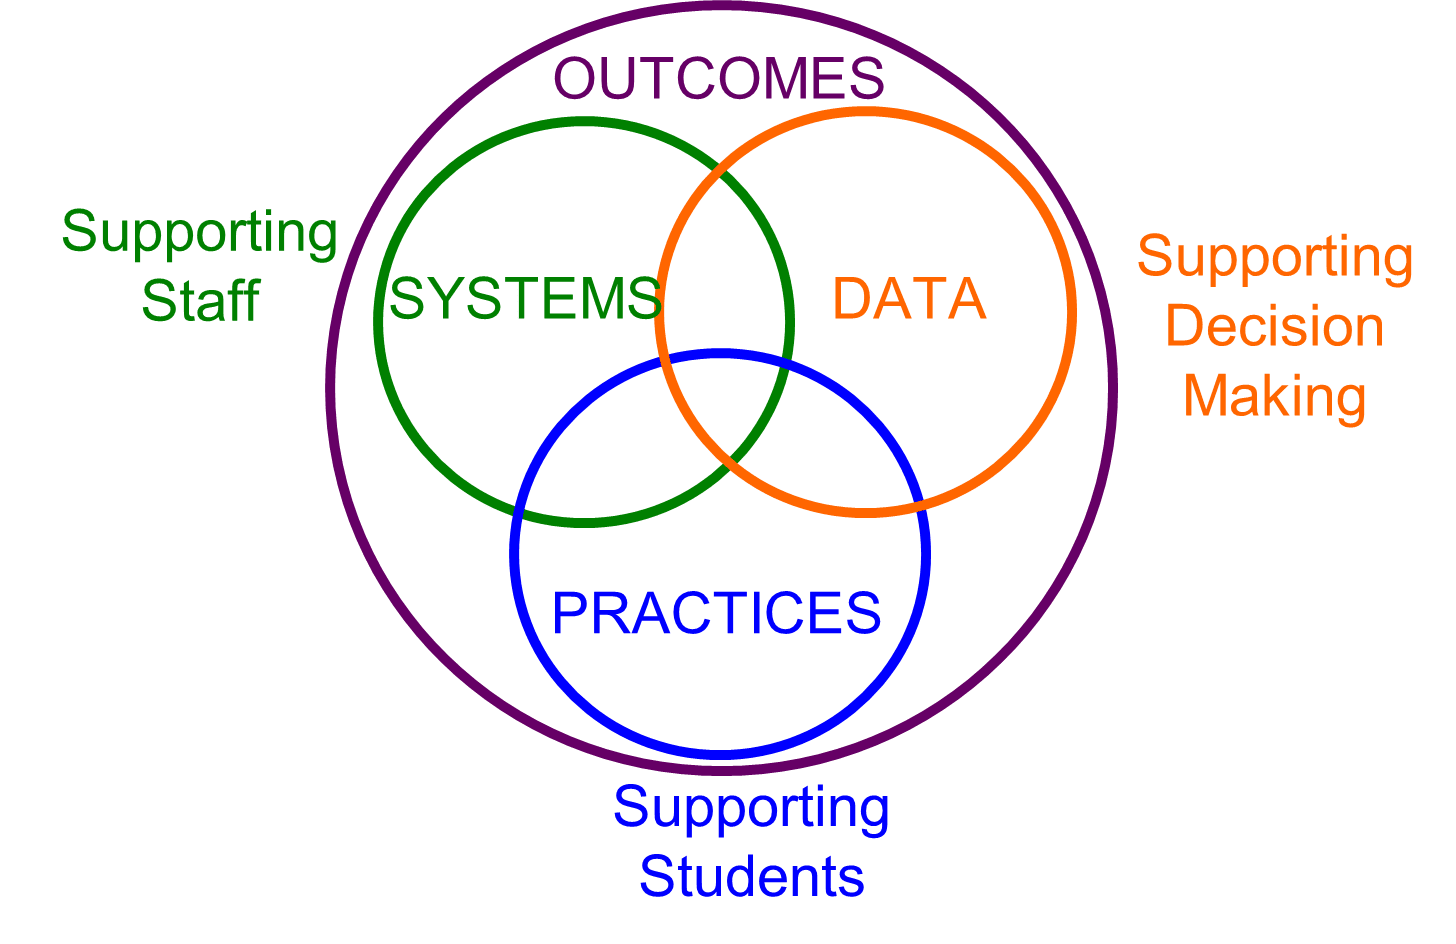 Implementation Logic Divisions and schools determine outcomes or measurable goals for improvement through the analysis of multiple data sources. Data supports all decision making. Decisions are made to select specific evidence based practices and implement them with fidelity based on the needs identified in the data. Systems are put in place to support the adults in the implementation of practices.